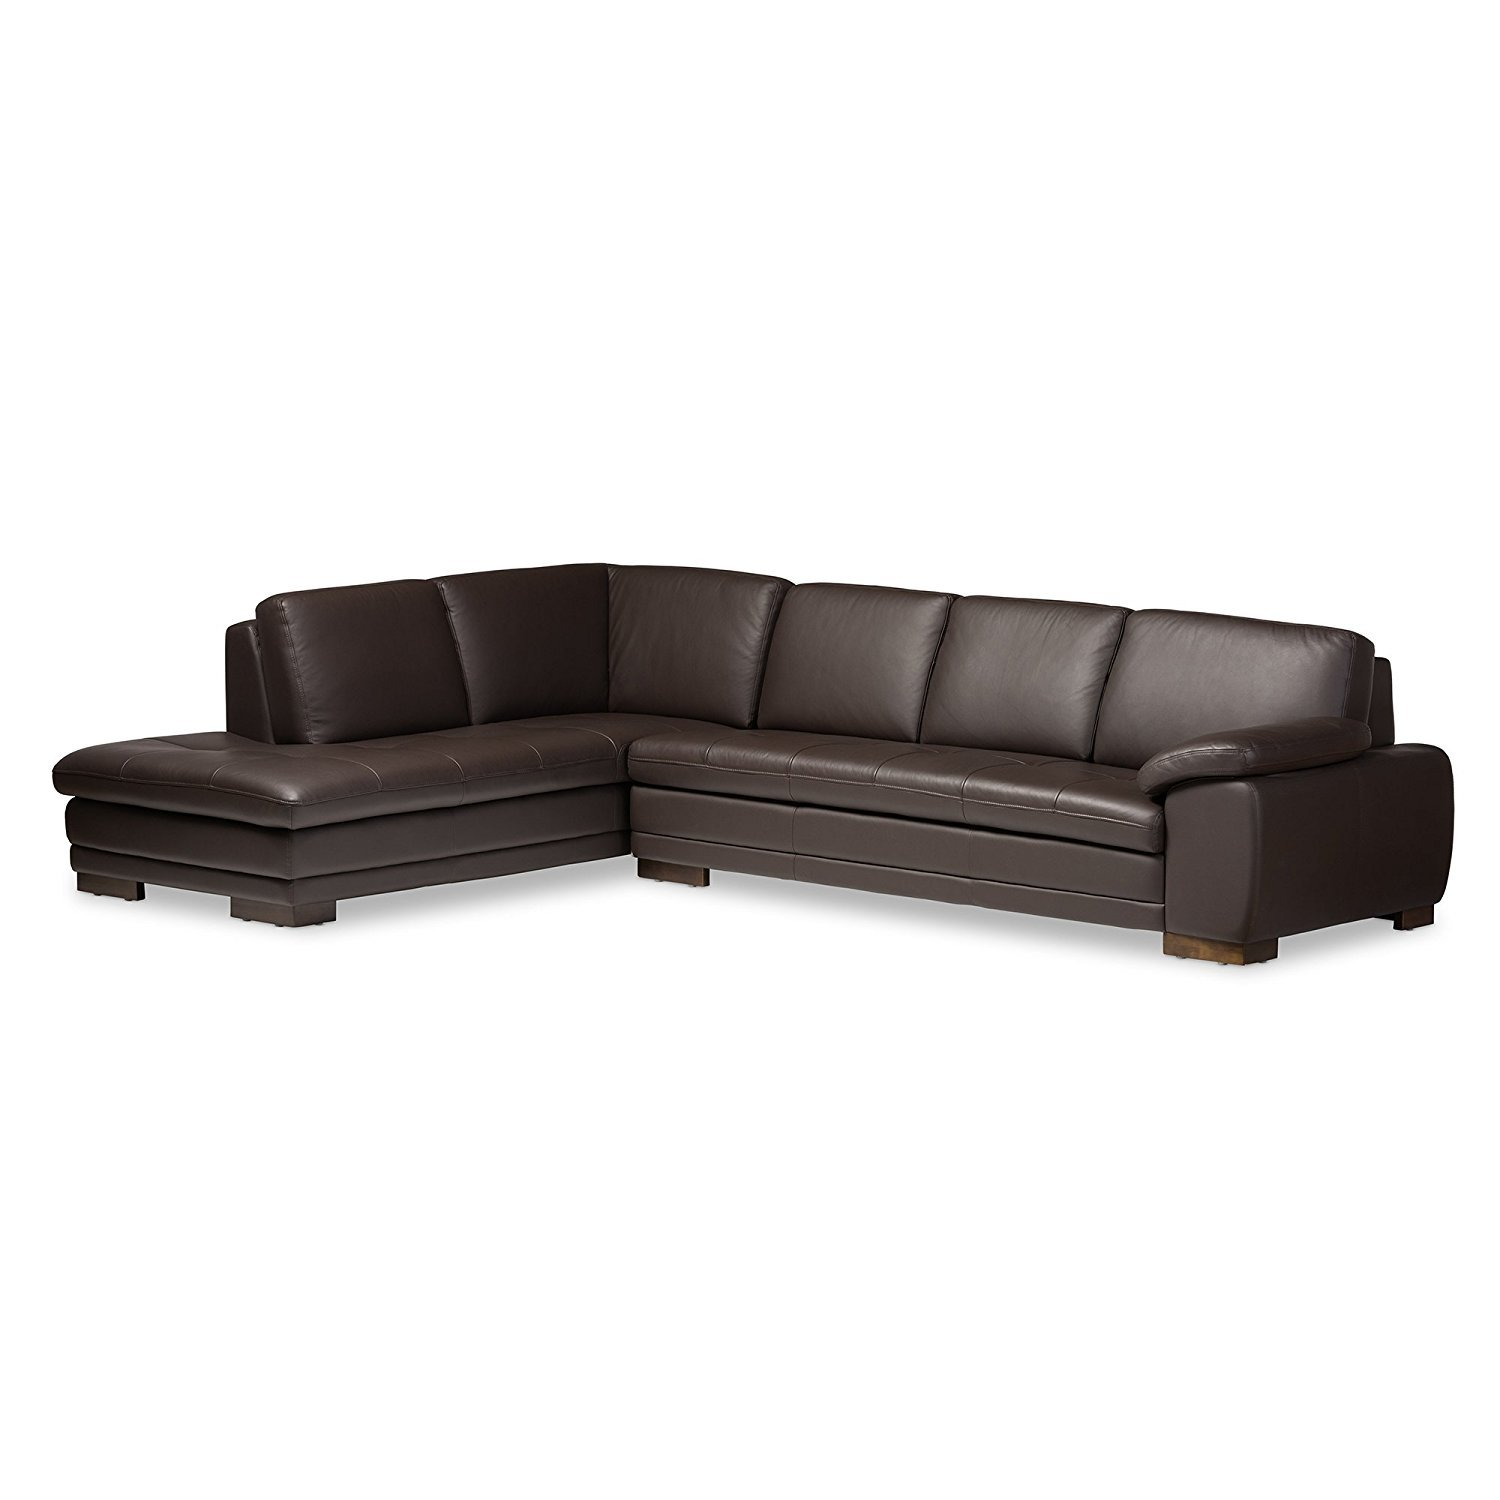 2 piece brown leather sofa beautiful sets online baxton studio abriana dark